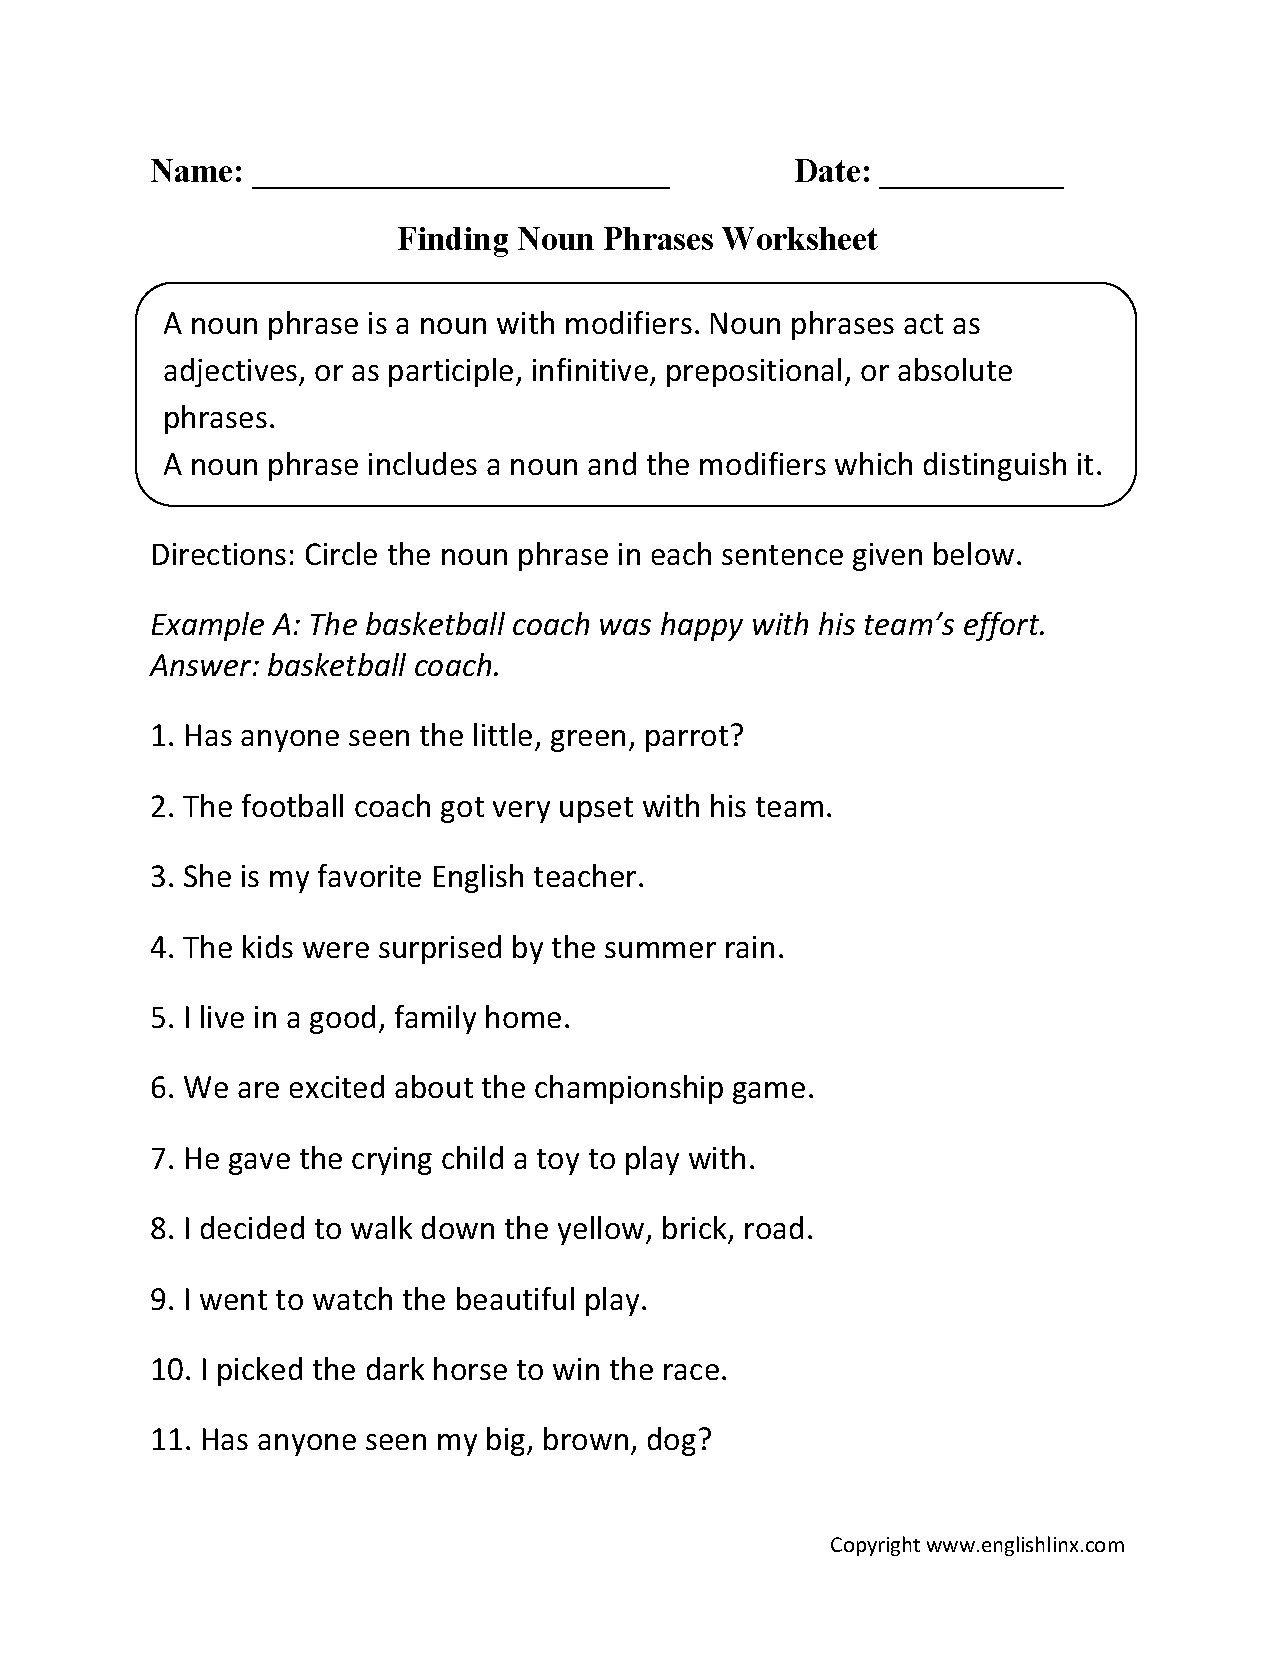 Worksheets Printable Noun Worksheets noun phrases worksheets englishlinx com board pinterest worksheets